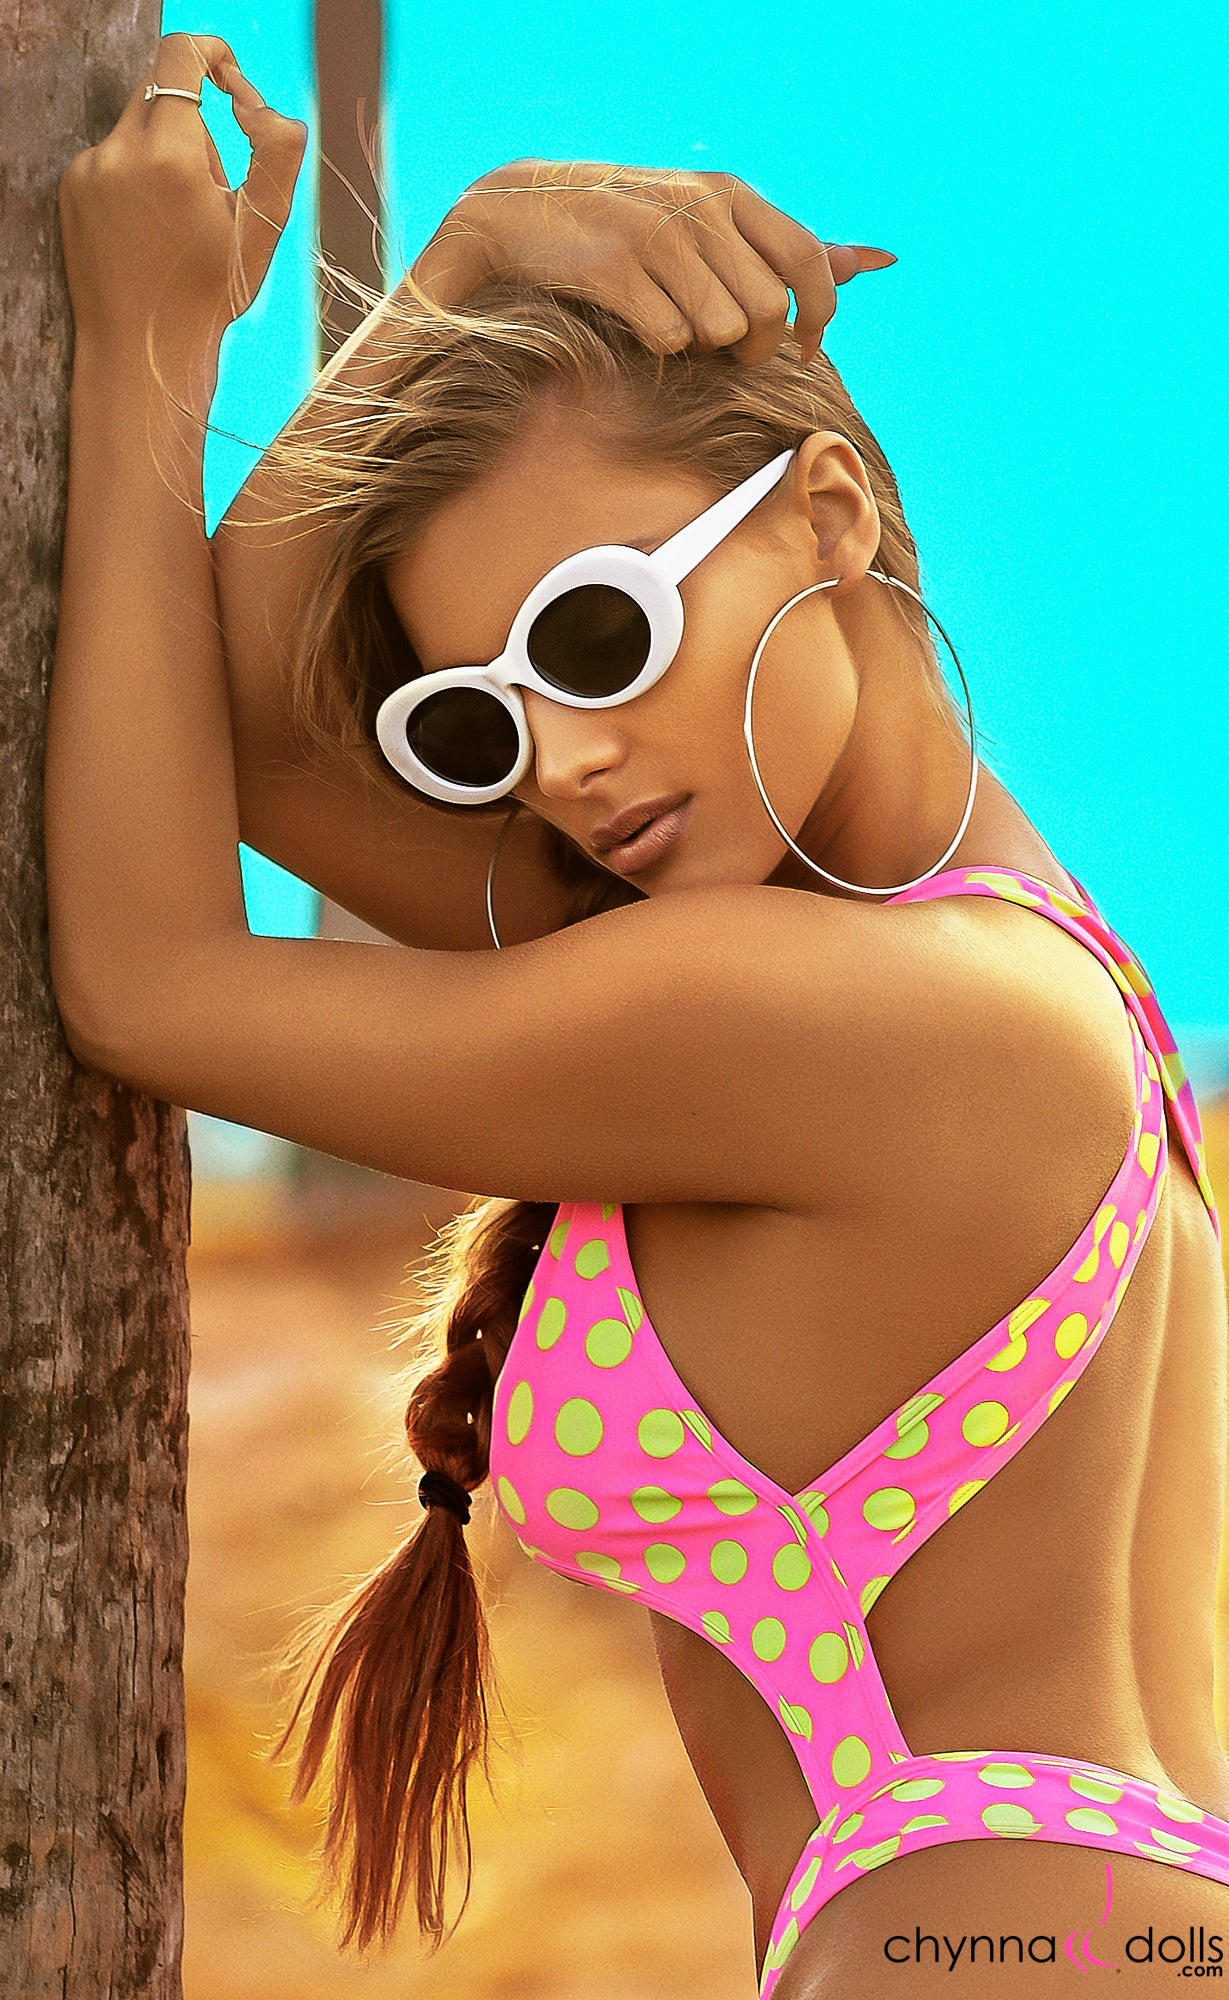 Retro Oval Round 90'S Sunglasses in White - Chynna Dolls Swimwear